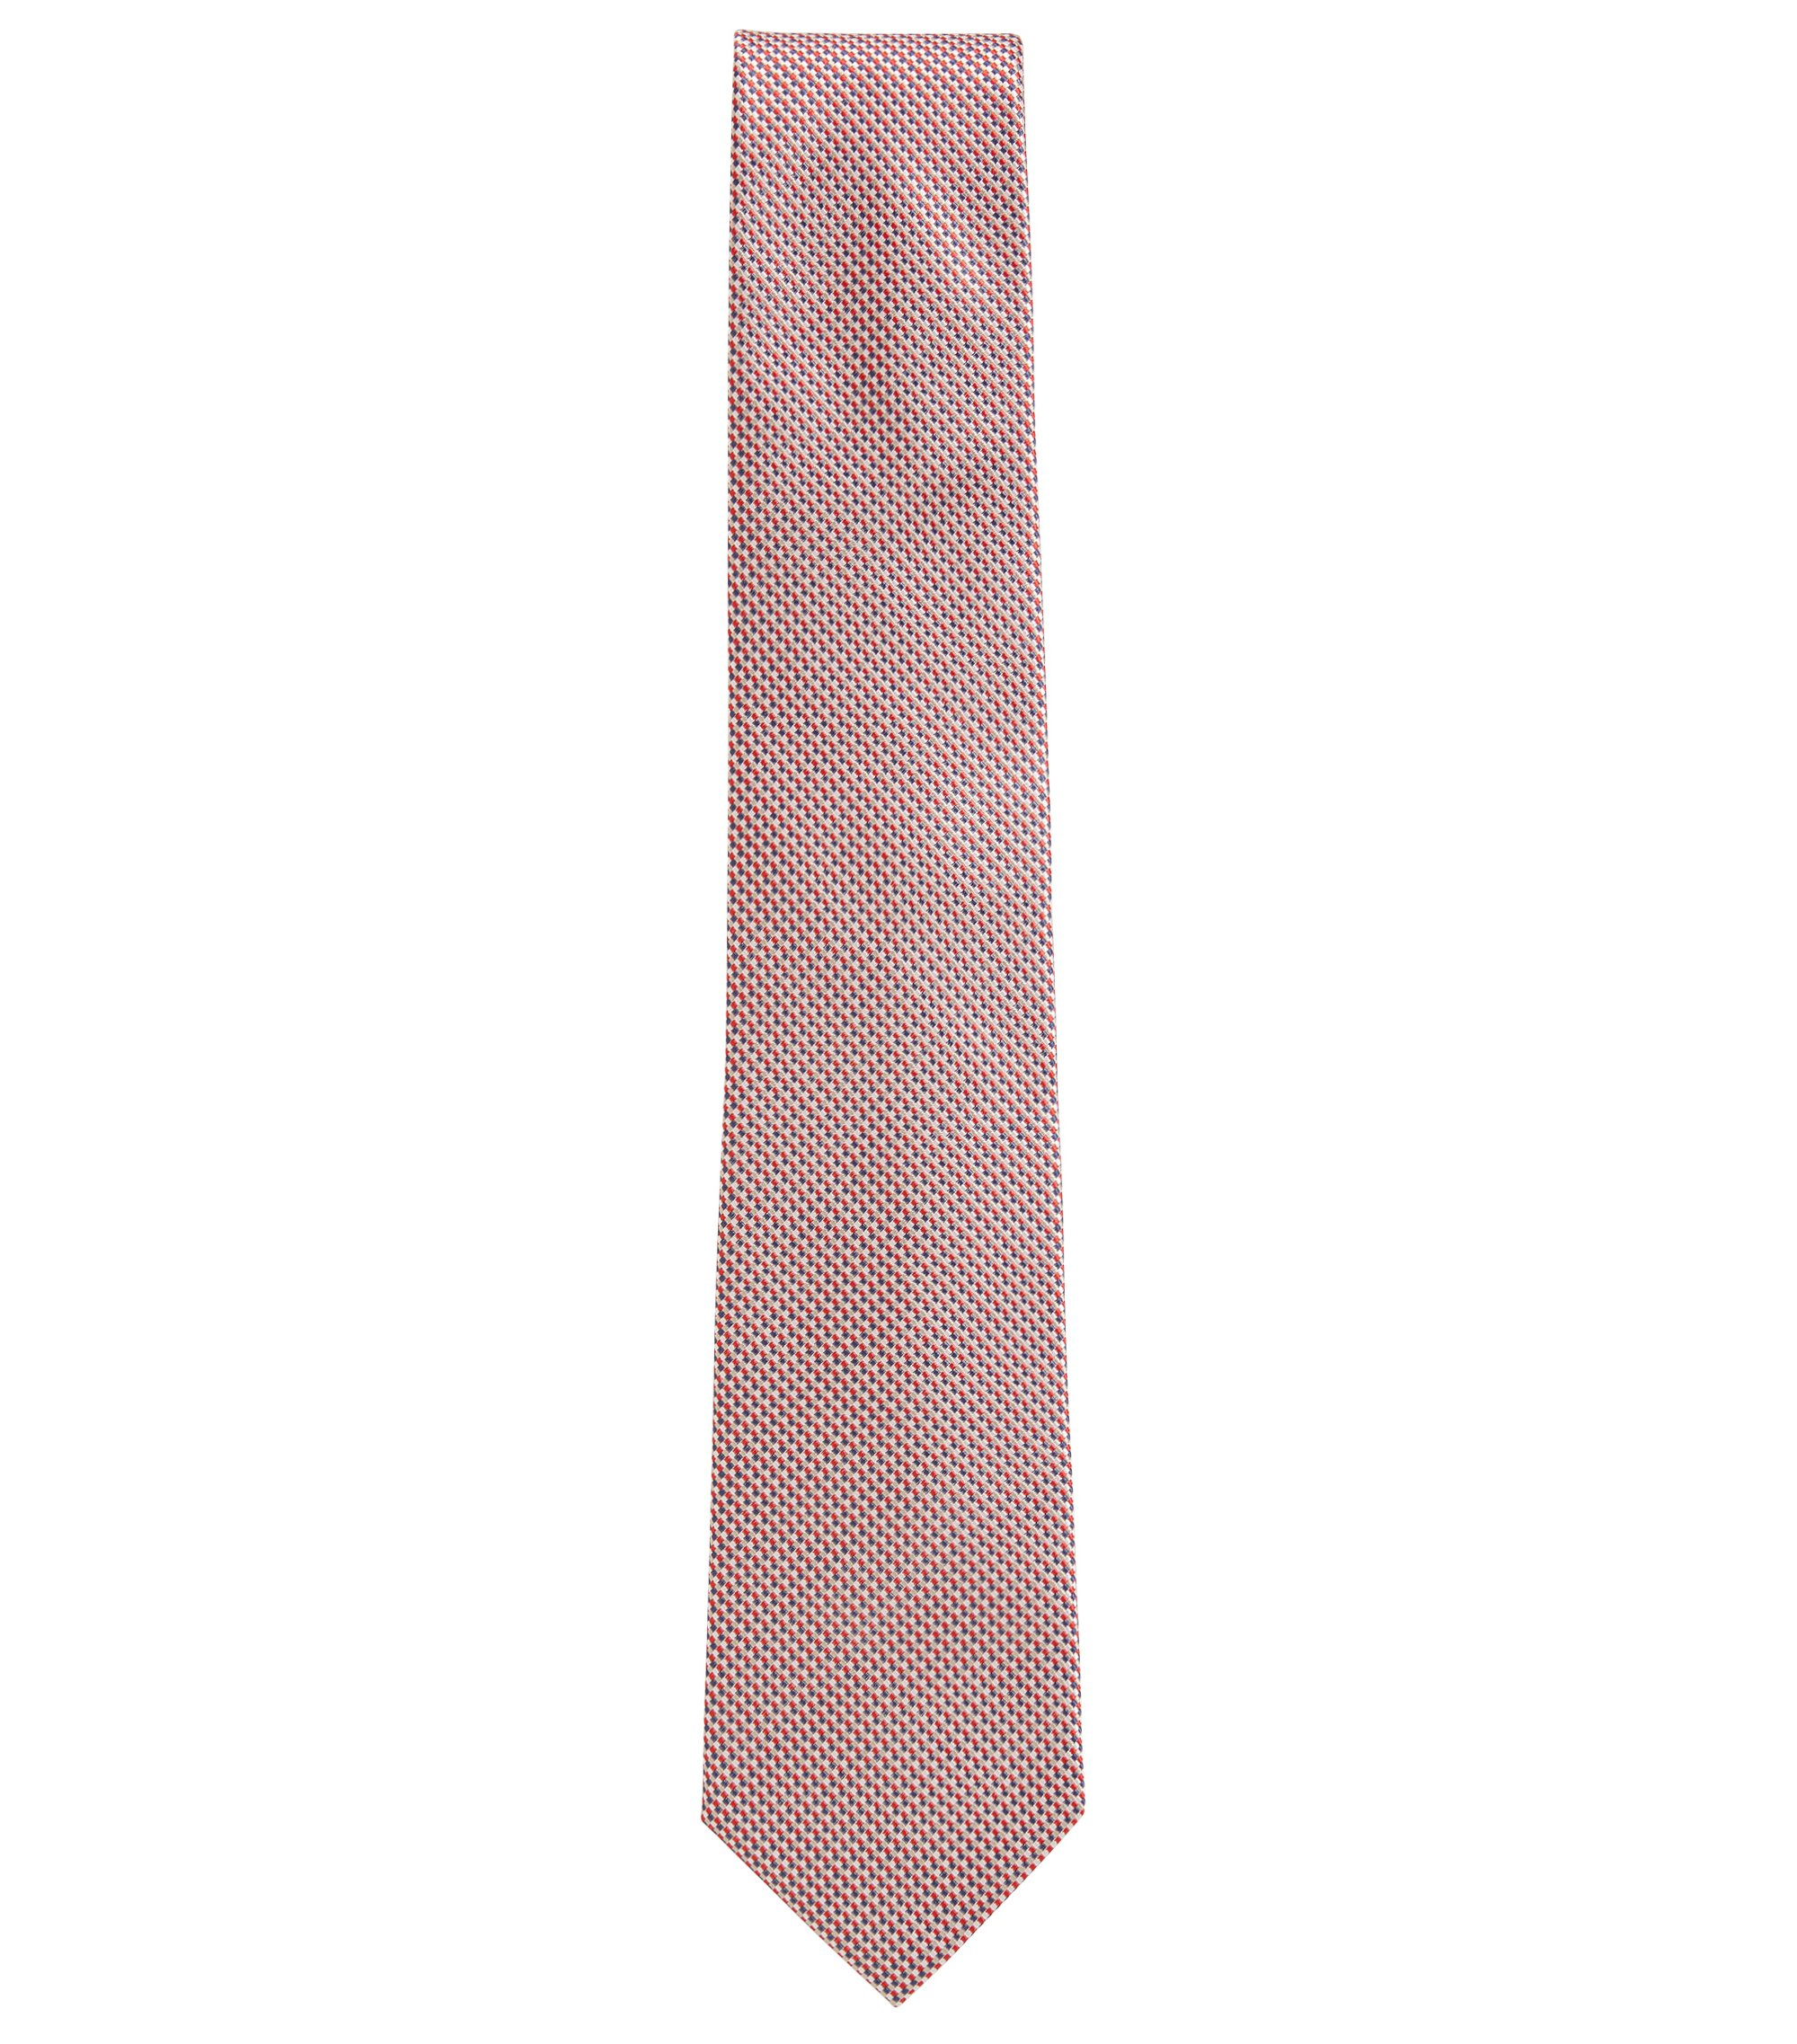 Micro-Patterned Italian Silk Tie, Dark pink